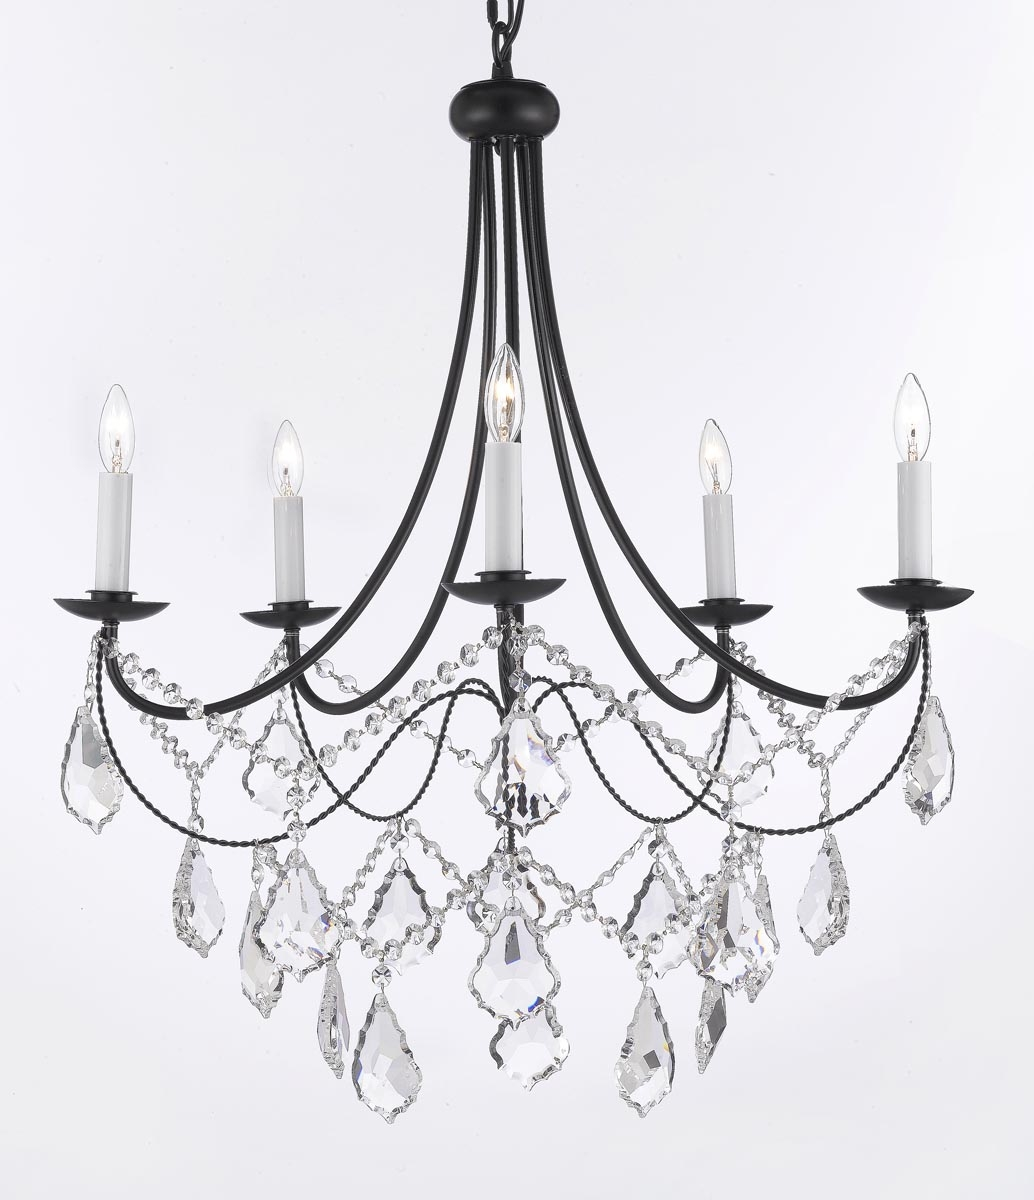 A7 B124035sw Gallery Wrought With Crystal Wrought Iron Intended For Wrought Iron Chandelier (#2 of 12)